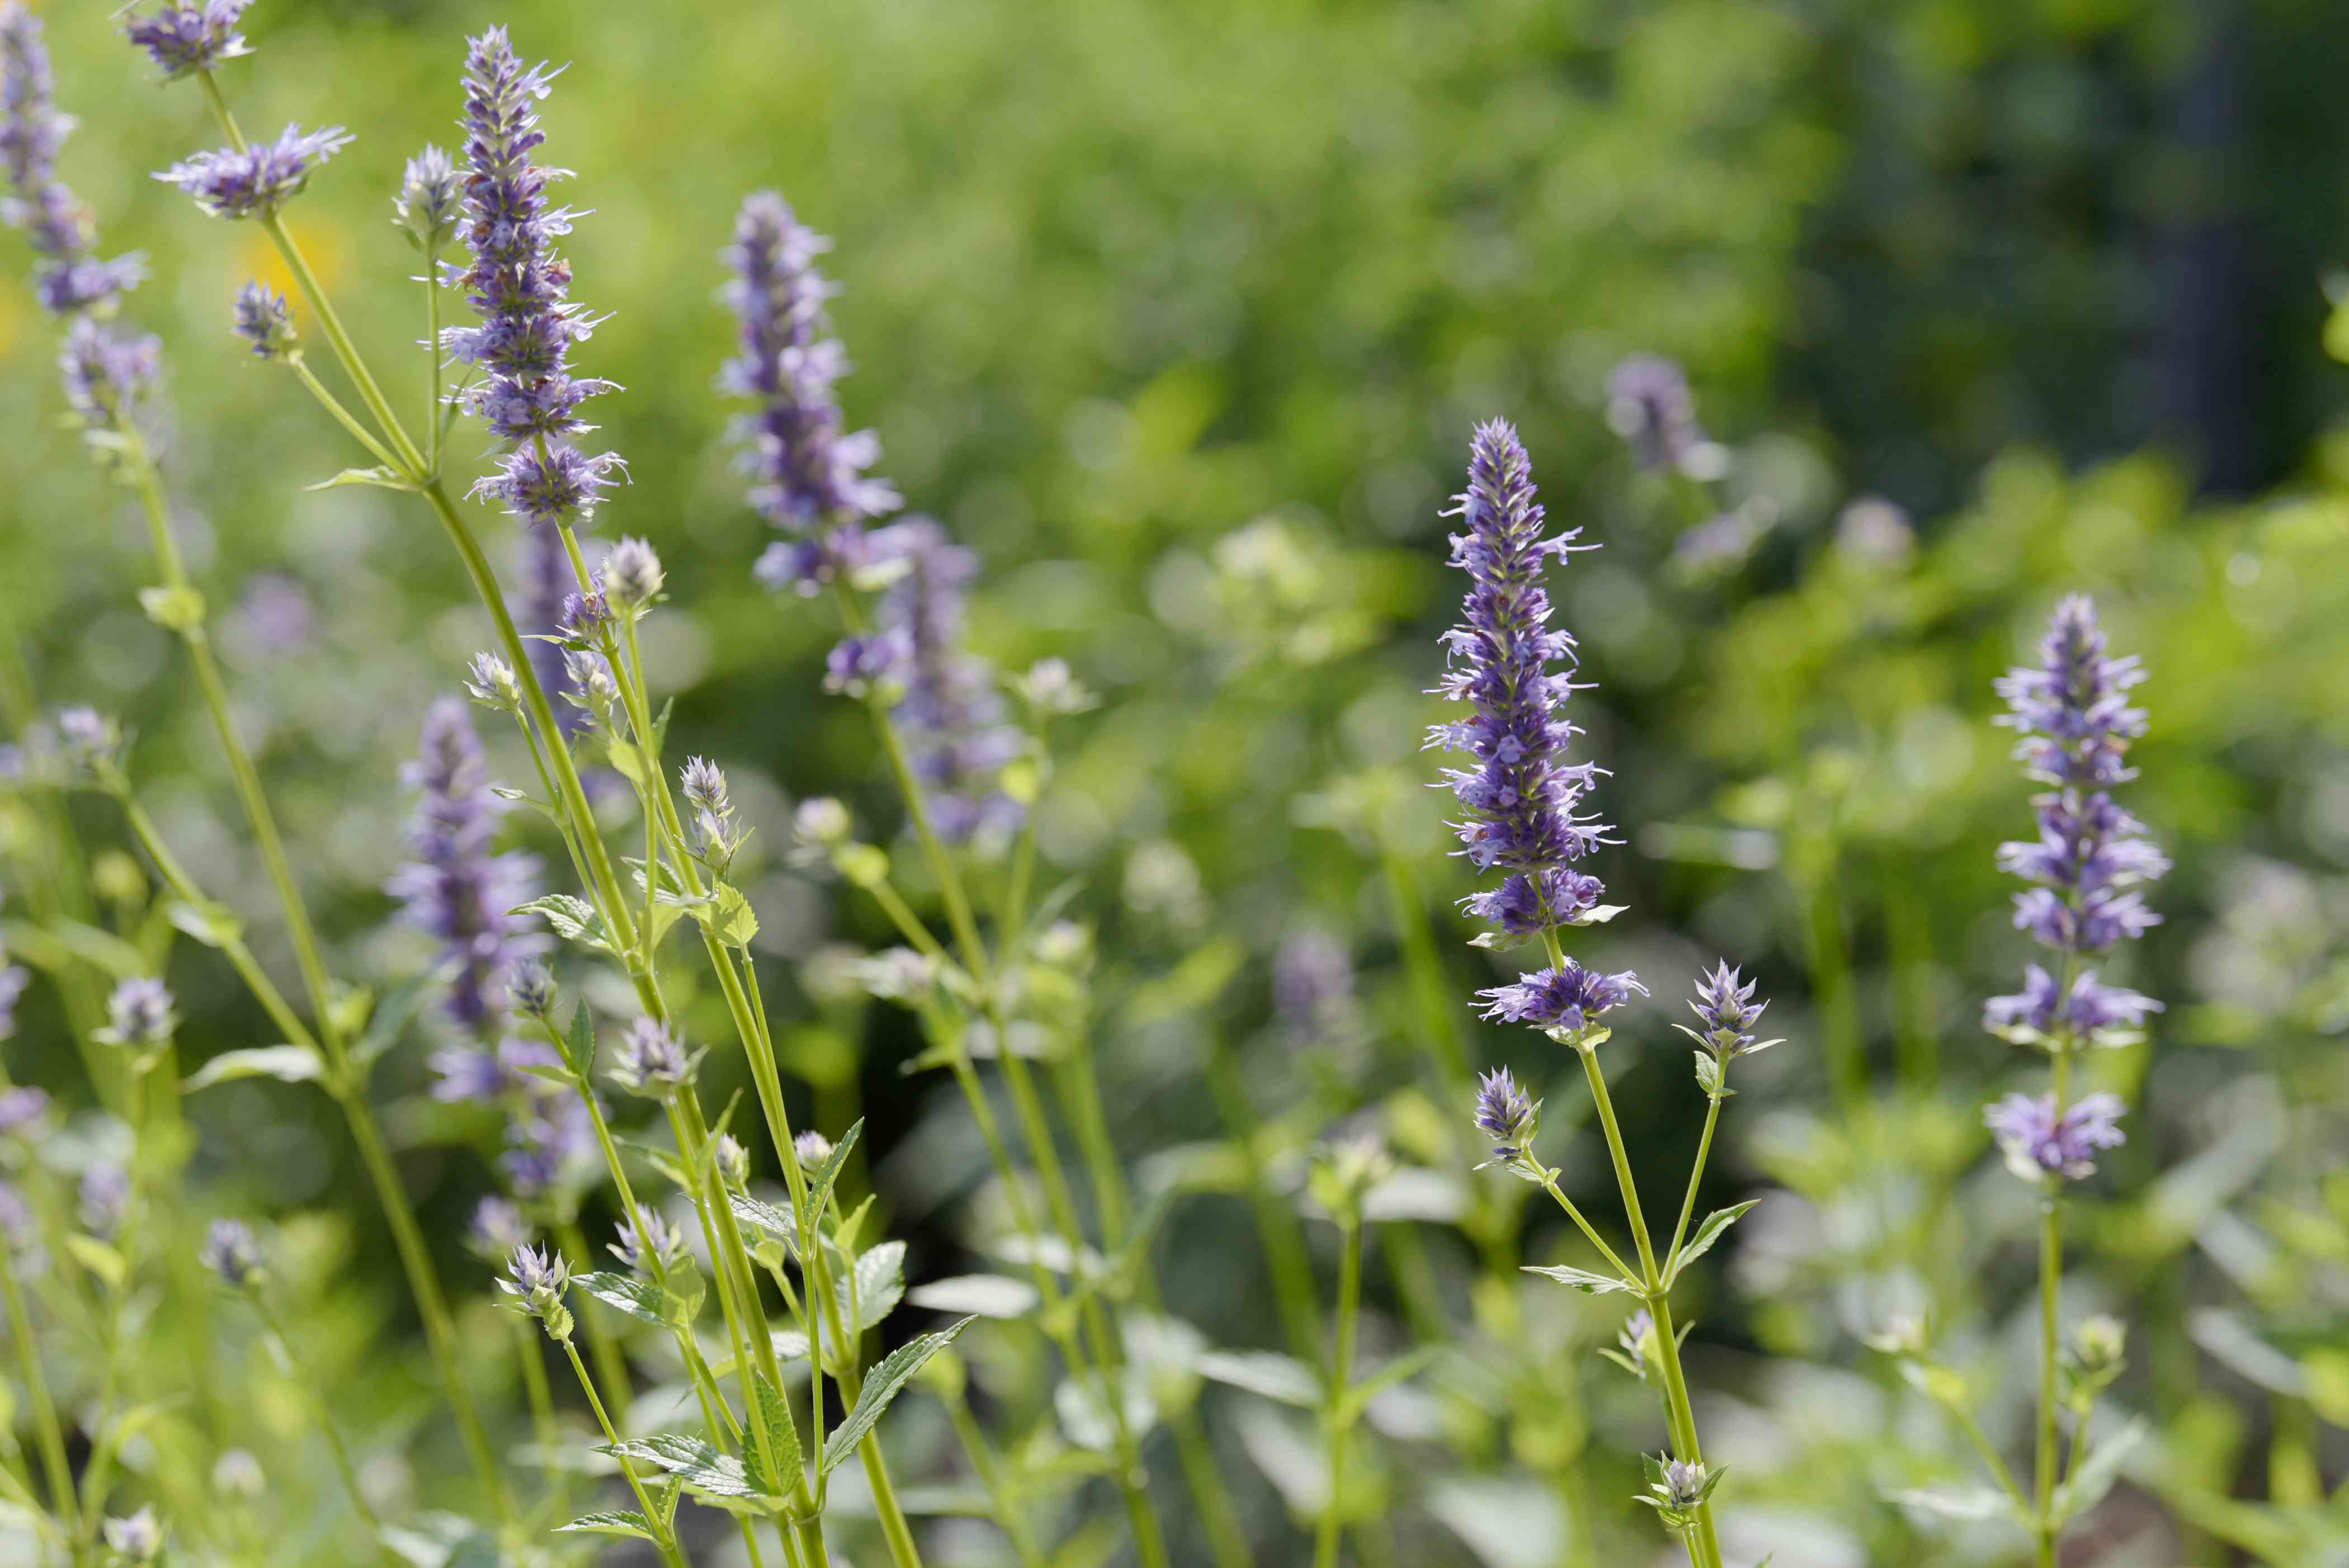 Purple giant hyssop plant spikes with small purple flowers on top closeup